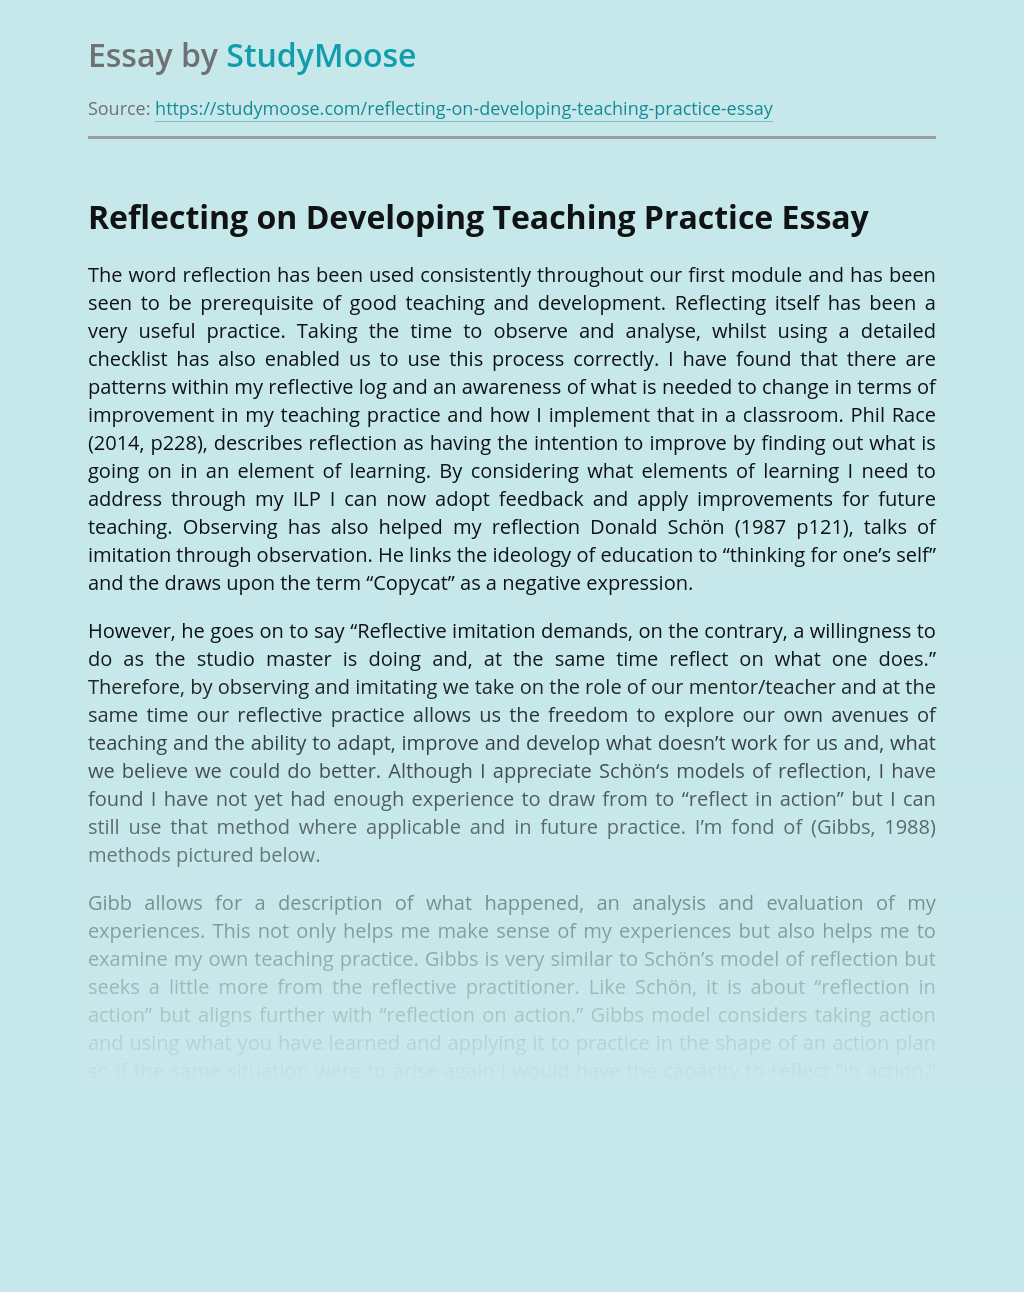 Reflecting on Developing Teaching Practice